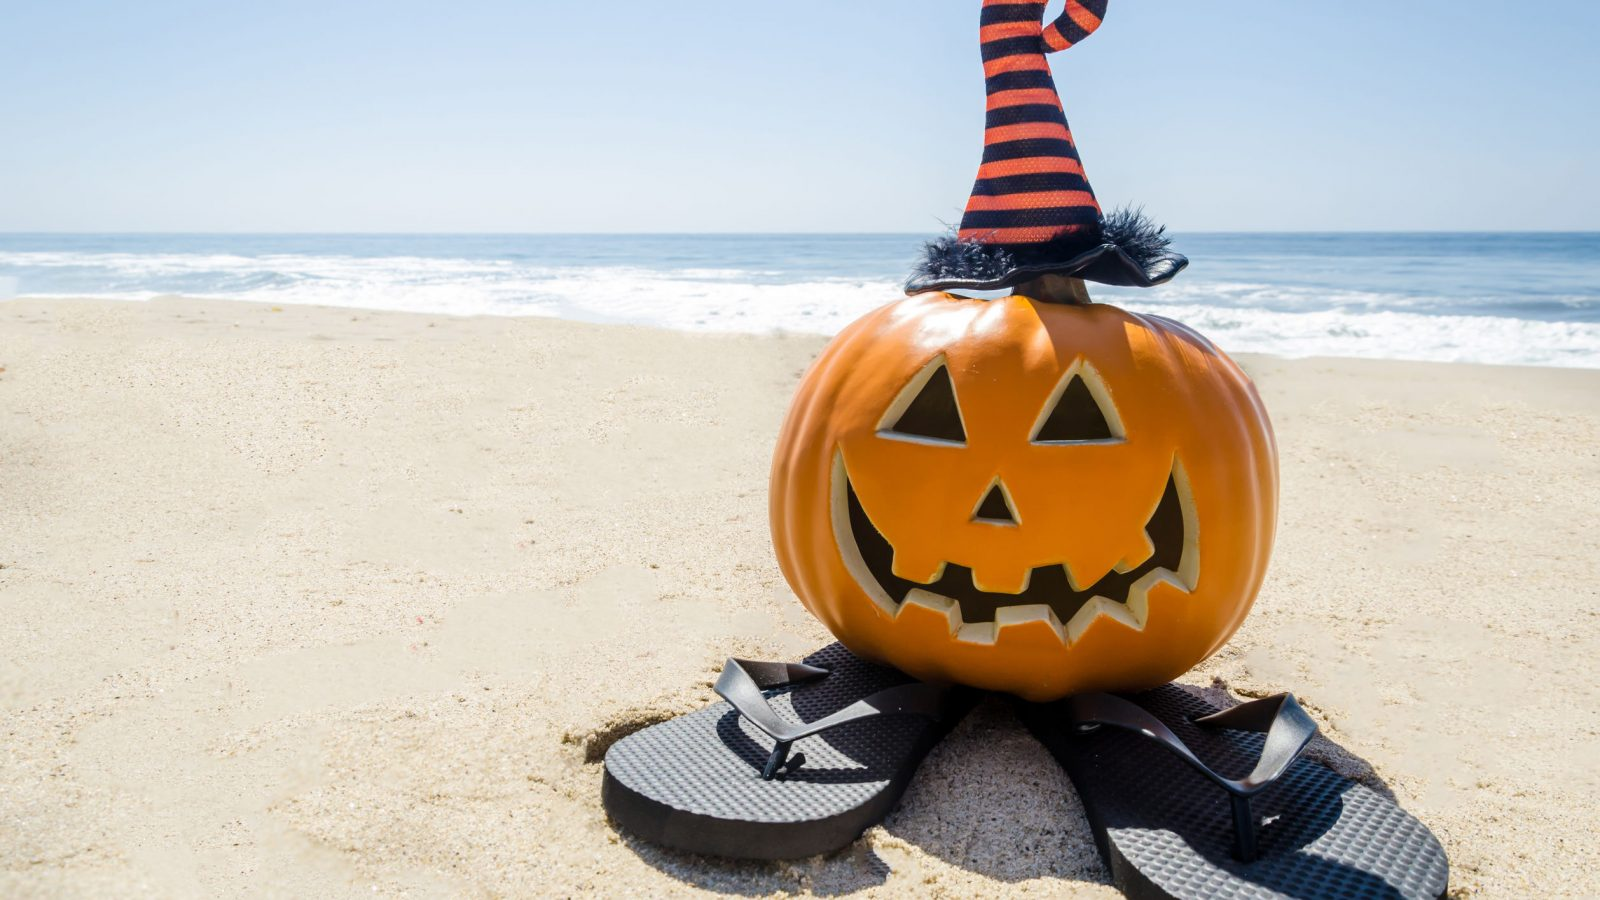 When Will The 2020 Halloween Event End 2020 October & Halloween Events in West End Panama City Beach